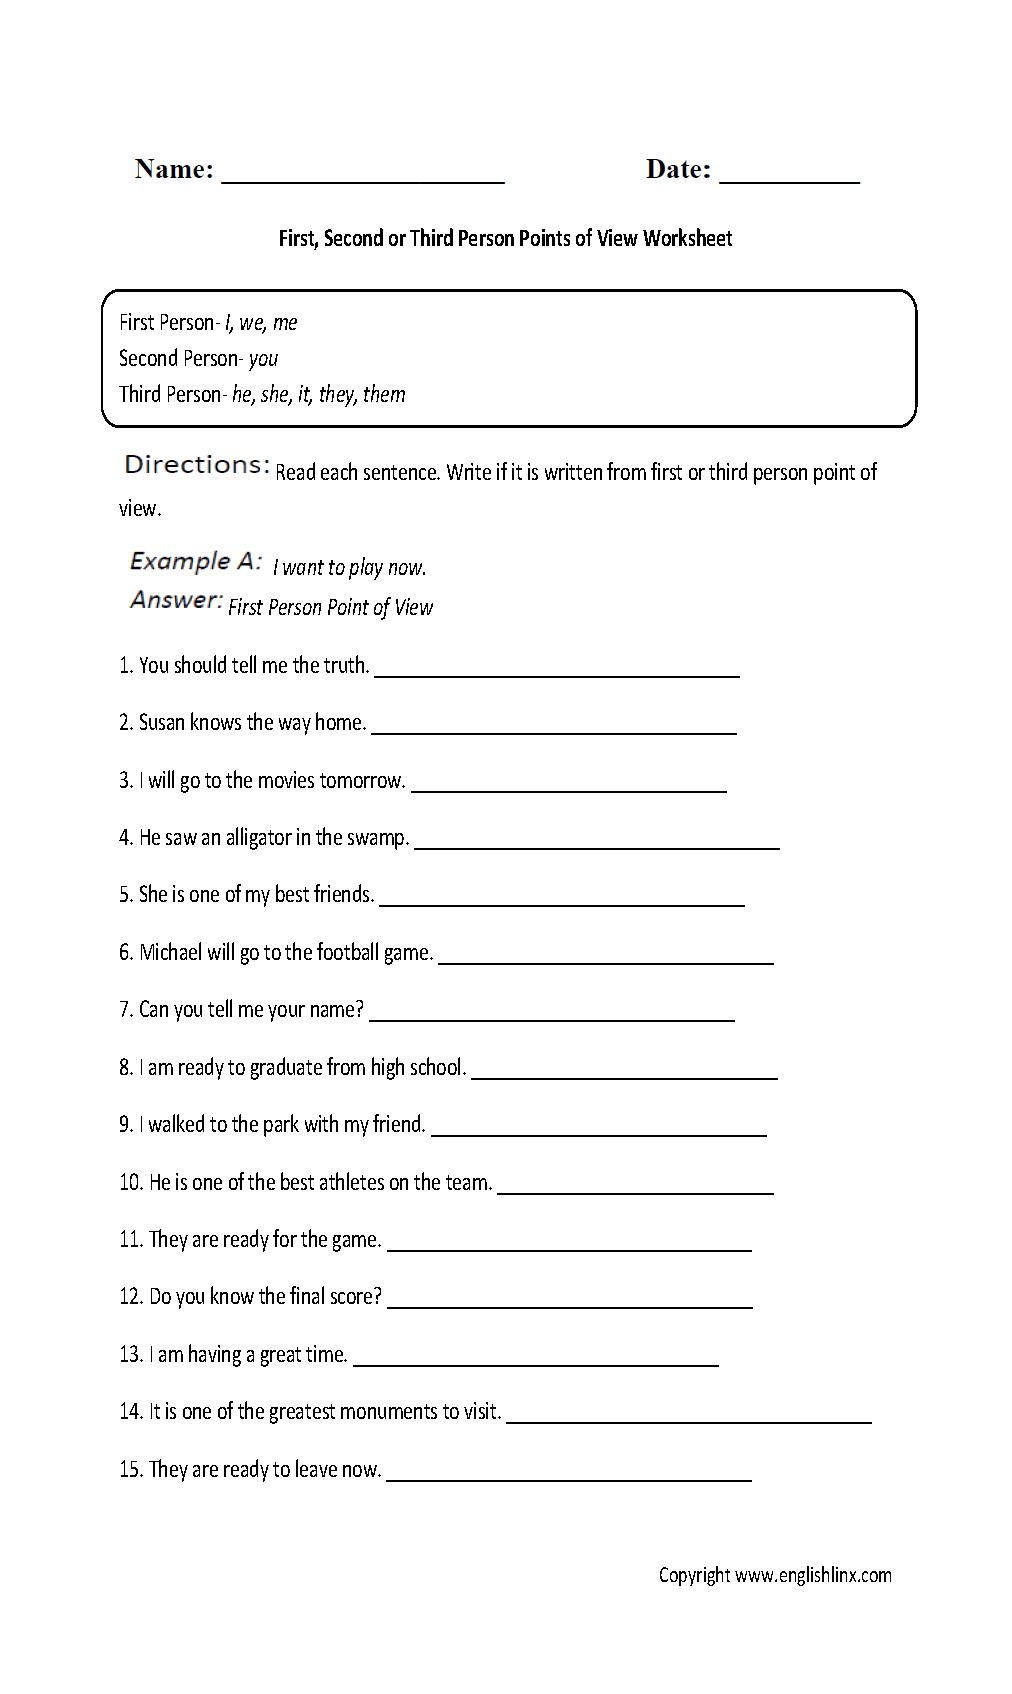 Weirdmailus  Unusual Englishlinxcom  Point Of View Worksheets With Lovable Point Of View Worksheet With Astounding Clauses And Phrases Ks Worksheets Also Numbers Tracing Worksheets   In Addition Adding  More Worksheets And Grade  English Grammar Worksheets As Well As Nonfiction Reading Worksheets Additionally Sight Words Worksheets For Preschool From Englishlinxcom With Weirdmailus  Lovable Englishlinxcom  Point Of View Worksheets With Astounding Point Of View Worksheet And Unusual Clauses And Phrases Ks Worksheets Also Numbers Tracing Worksheets   In Addition Adding  More Worksheets From Englishlinxcom